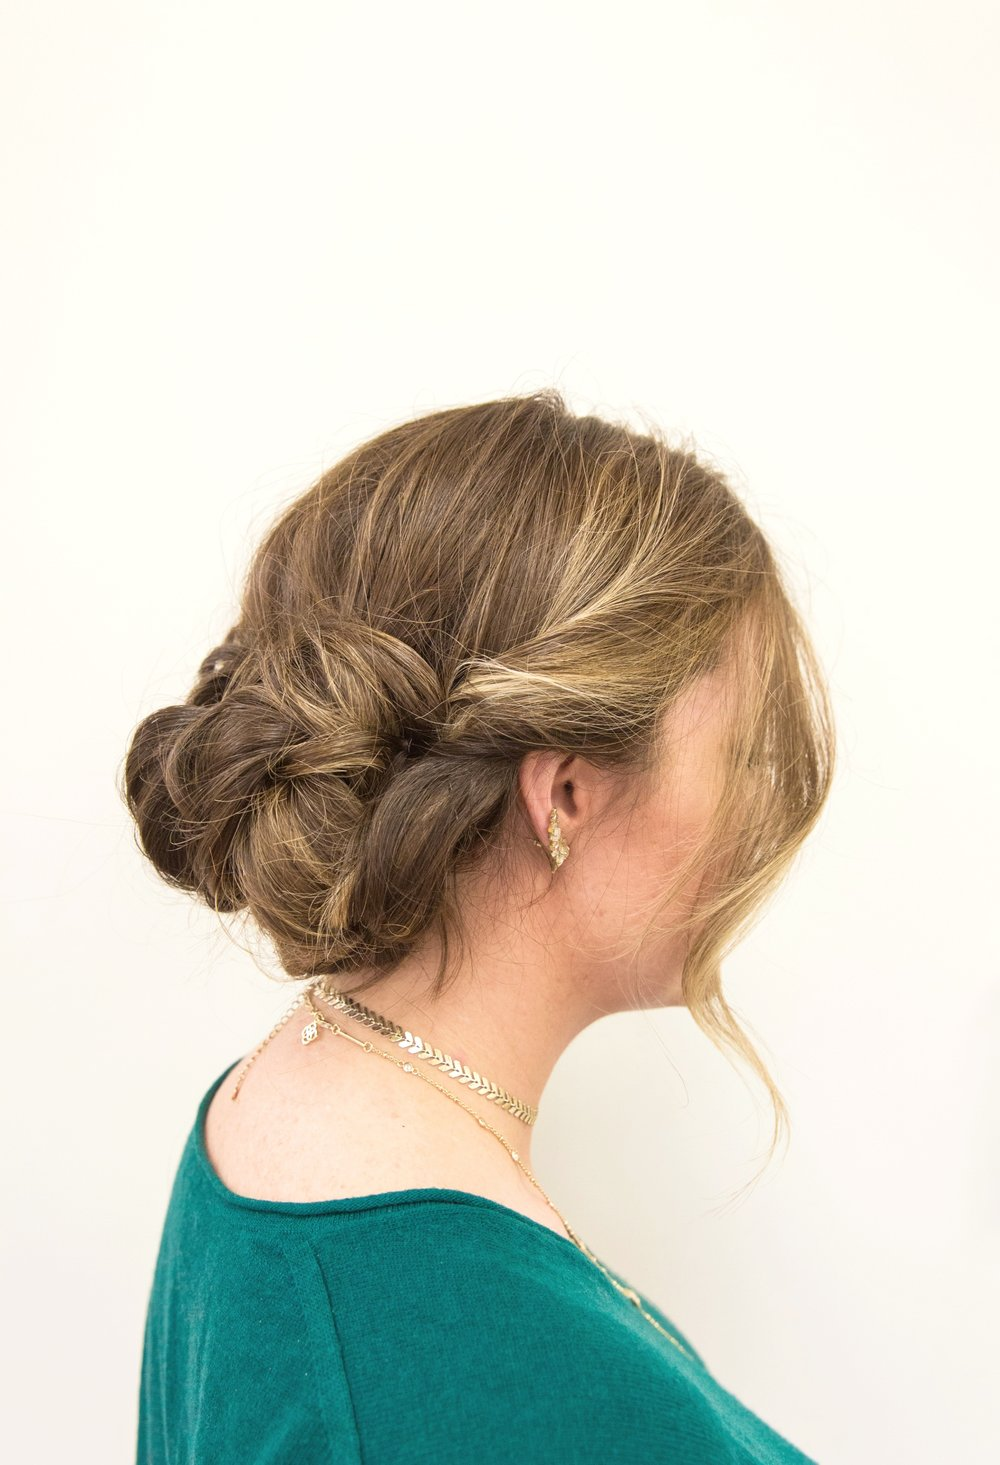 Holiday Hairstyle - Up Do you'll love #BeautyBrands